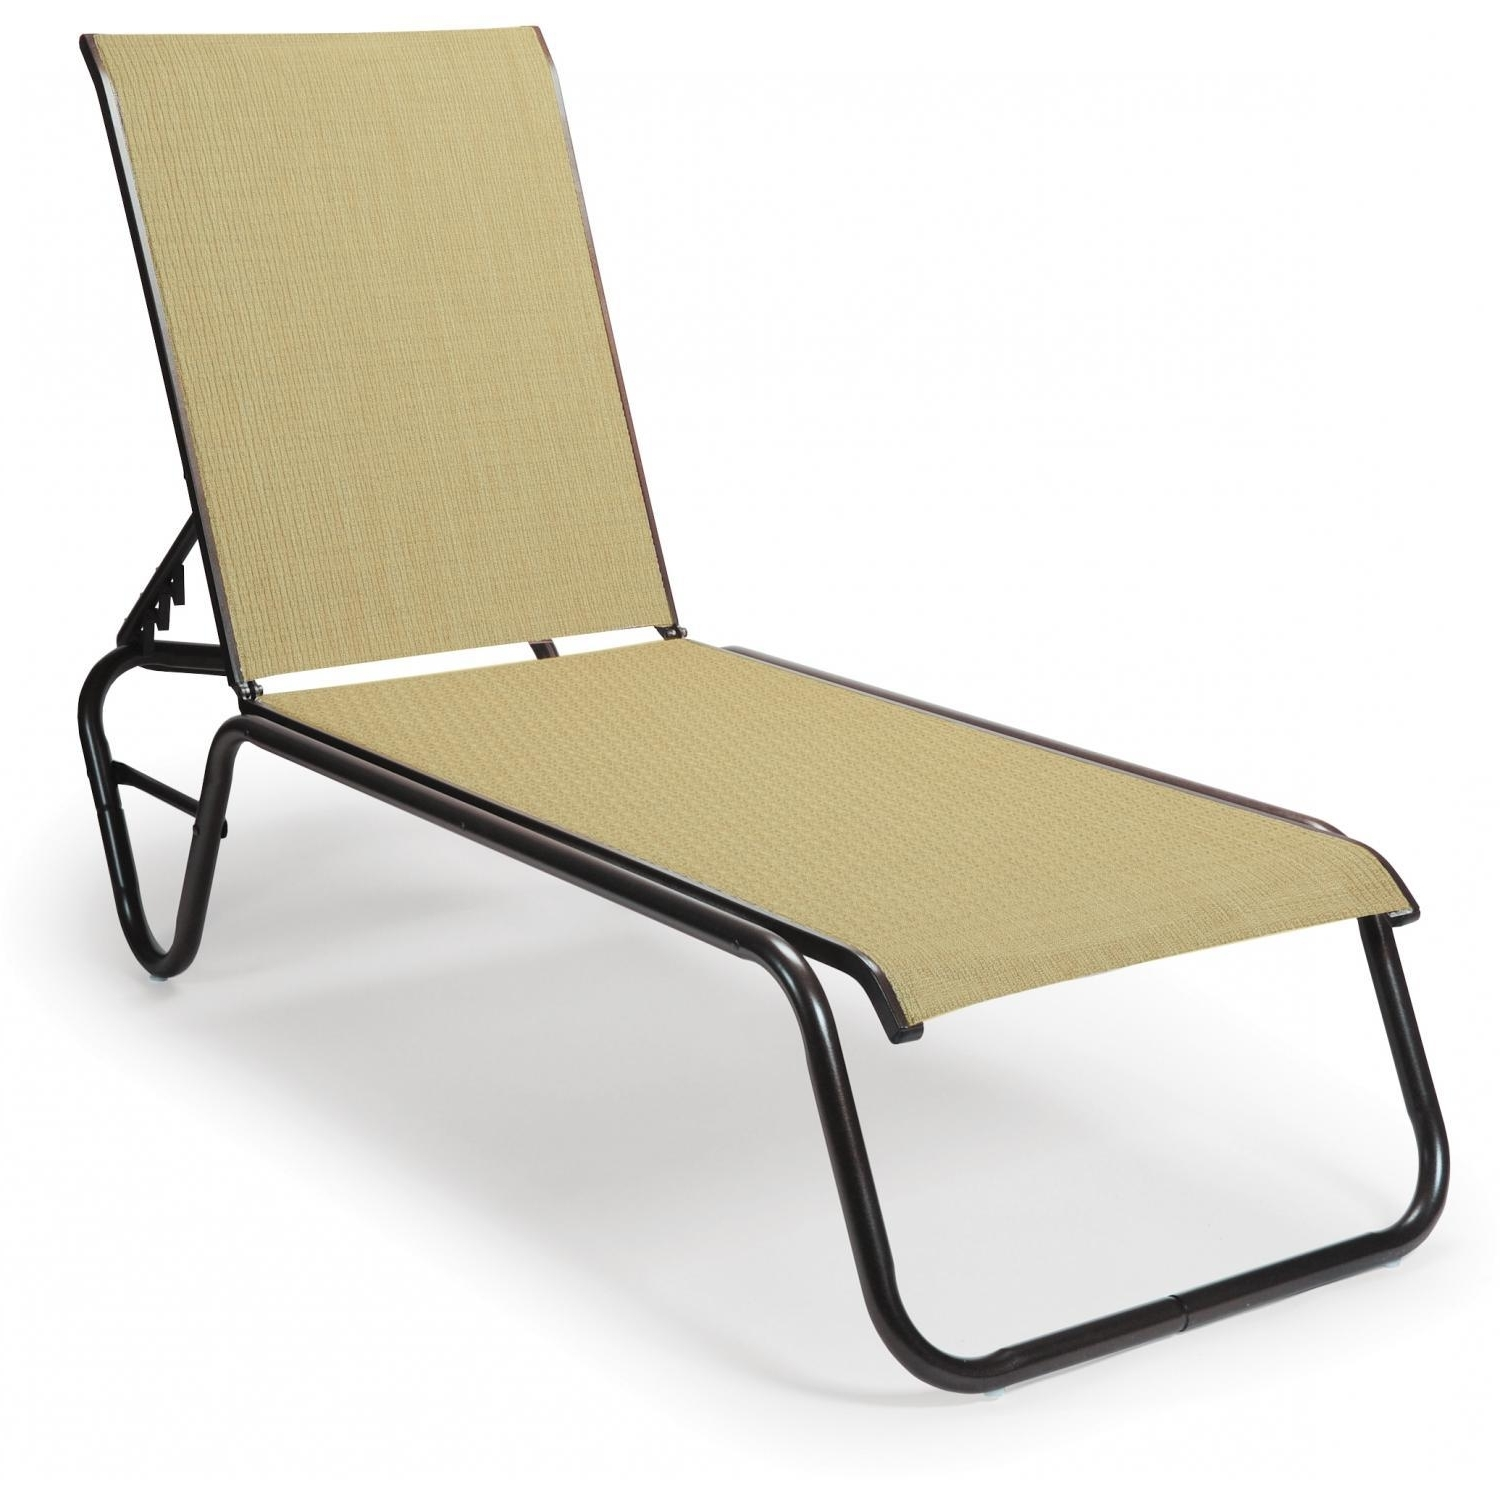 Telescope Casual Gardenella Sling Patio Stacking Armless Chaise With Preferred Sling Chaise Lounge Chairs (View 15 of 15)